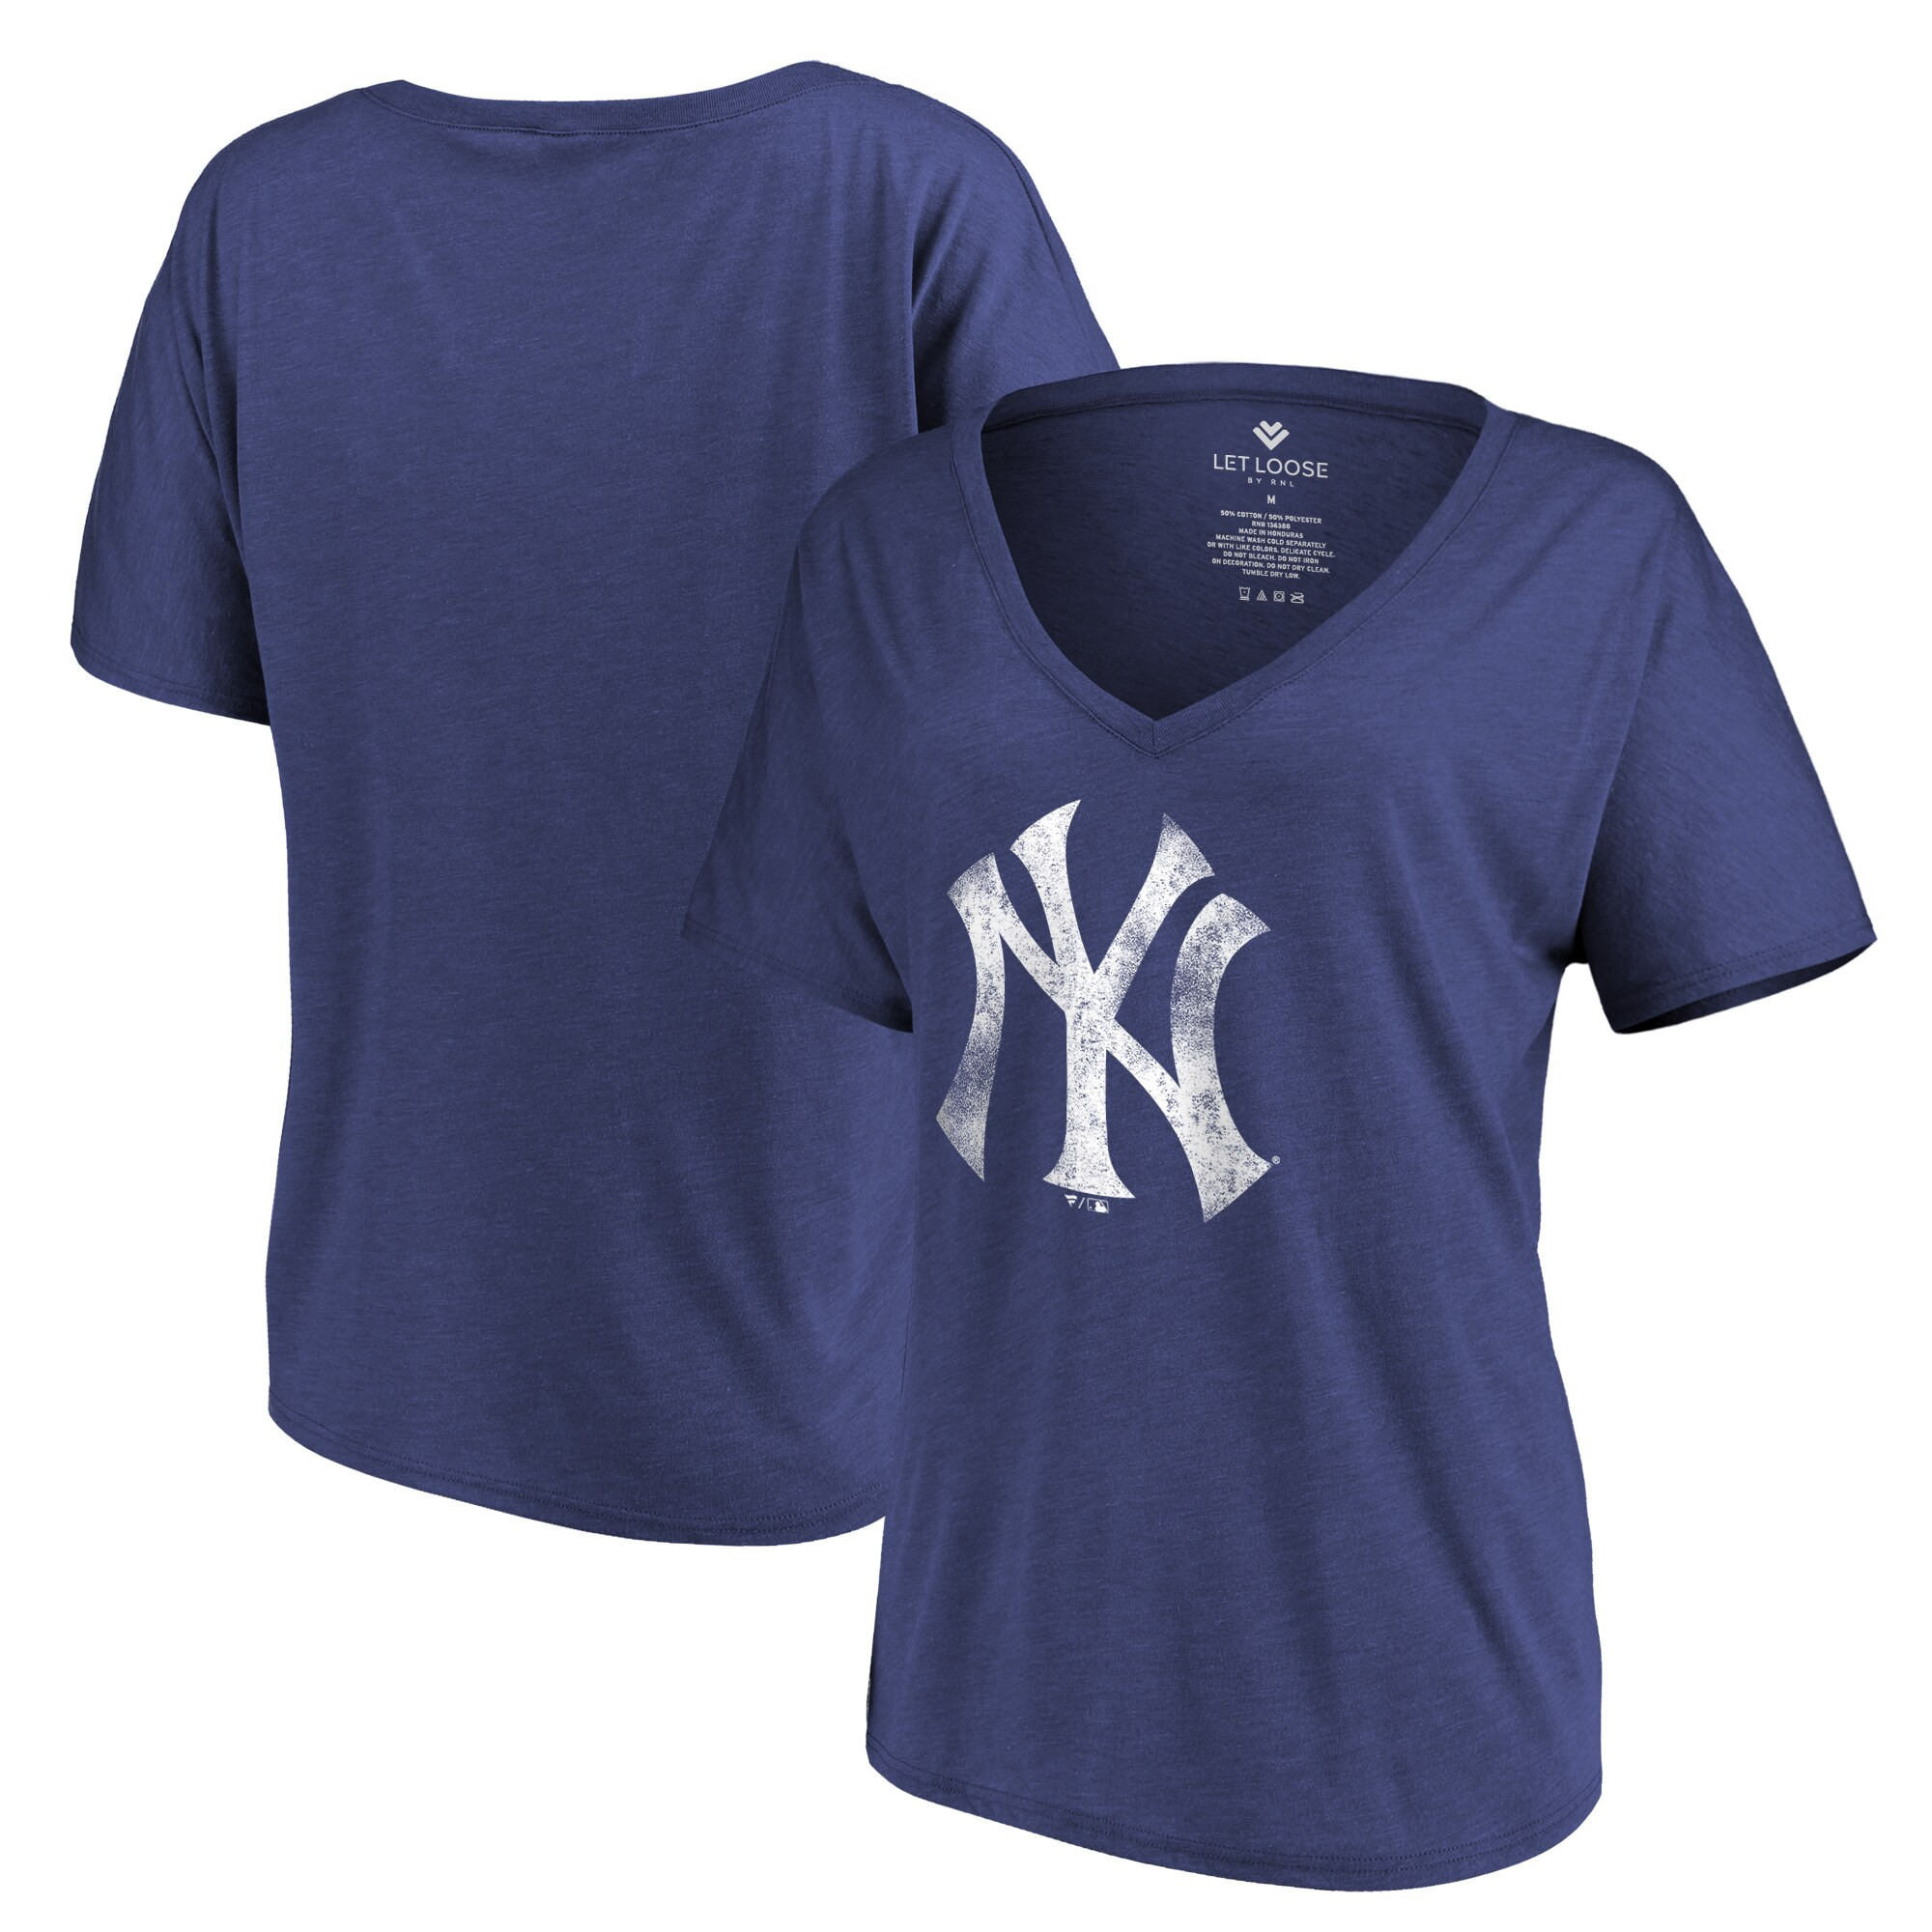 New York Yankees Let Loose by RNL Women's Distressed Primary Logo T-Shirt - Navy